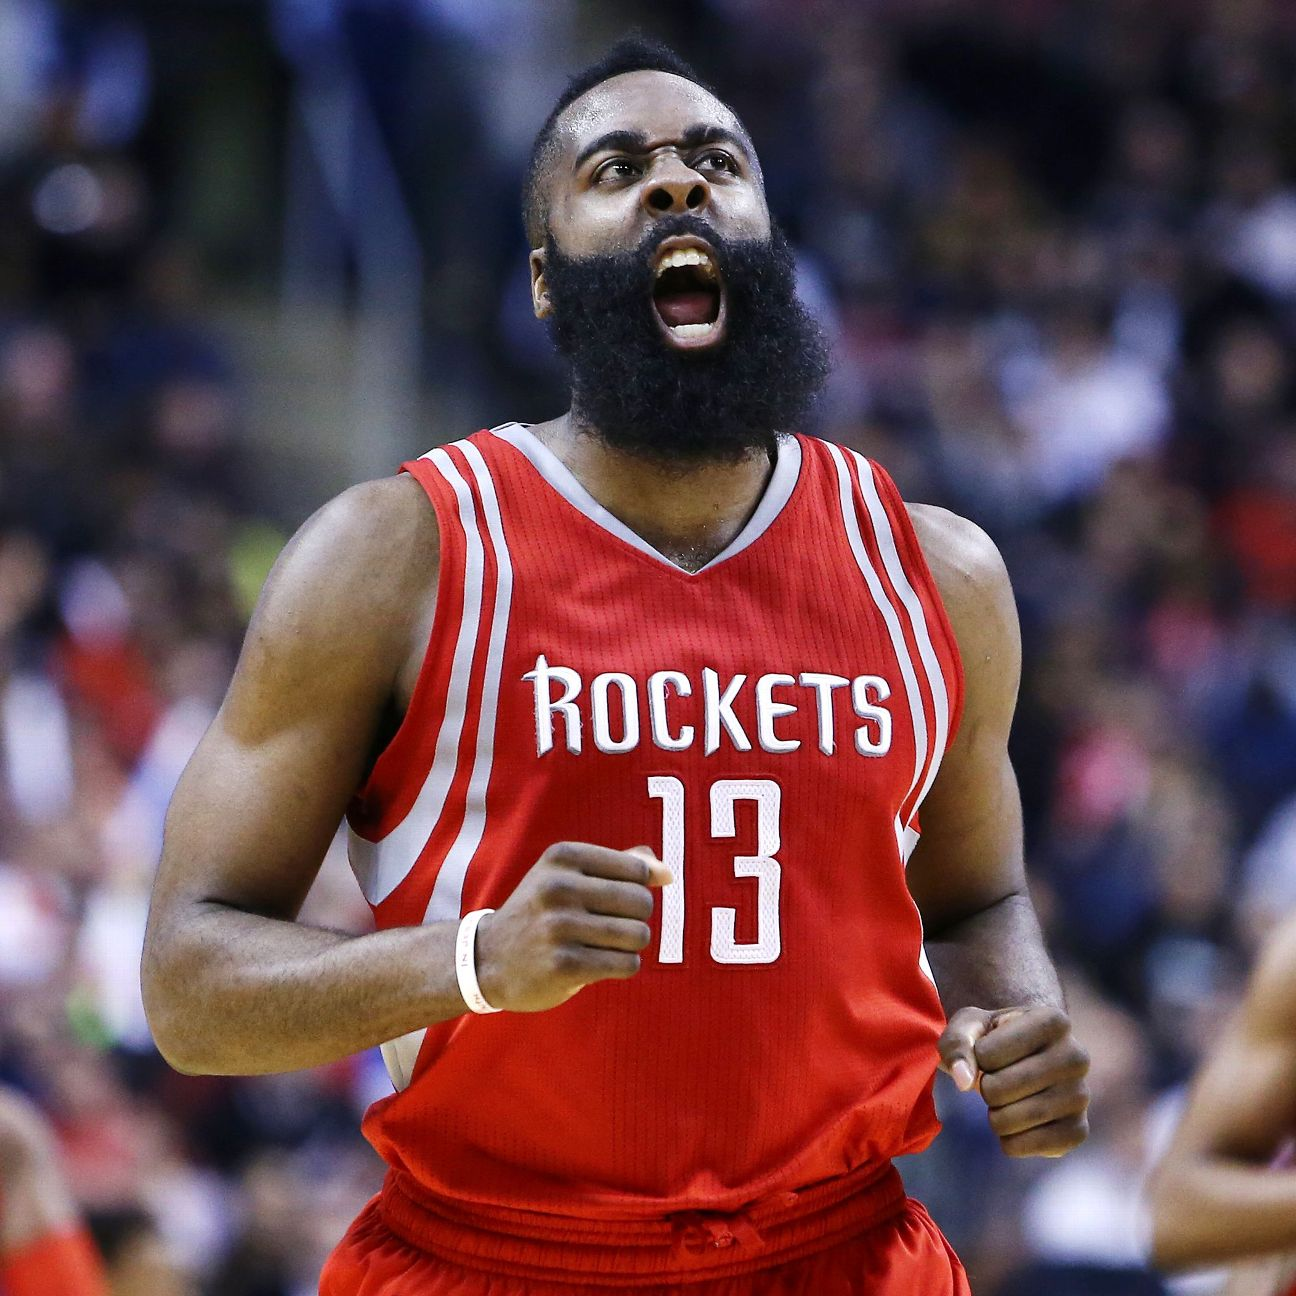 Houston Rockets Vs Okc: James Harden Of Houston Rockets Expects To Play Vs